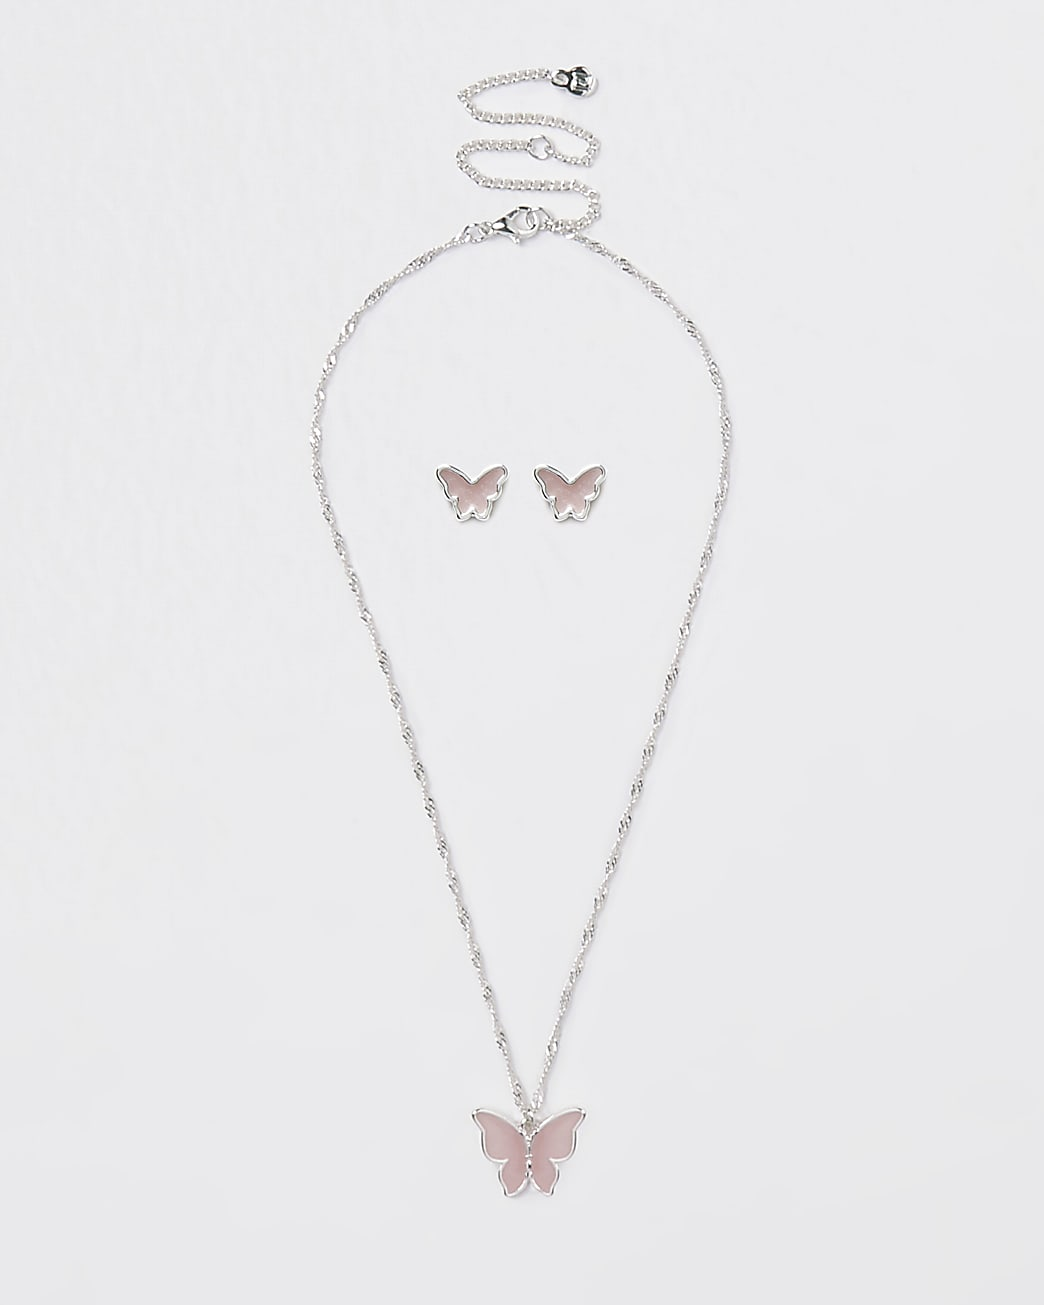 Pink butterfly earring and necklace set